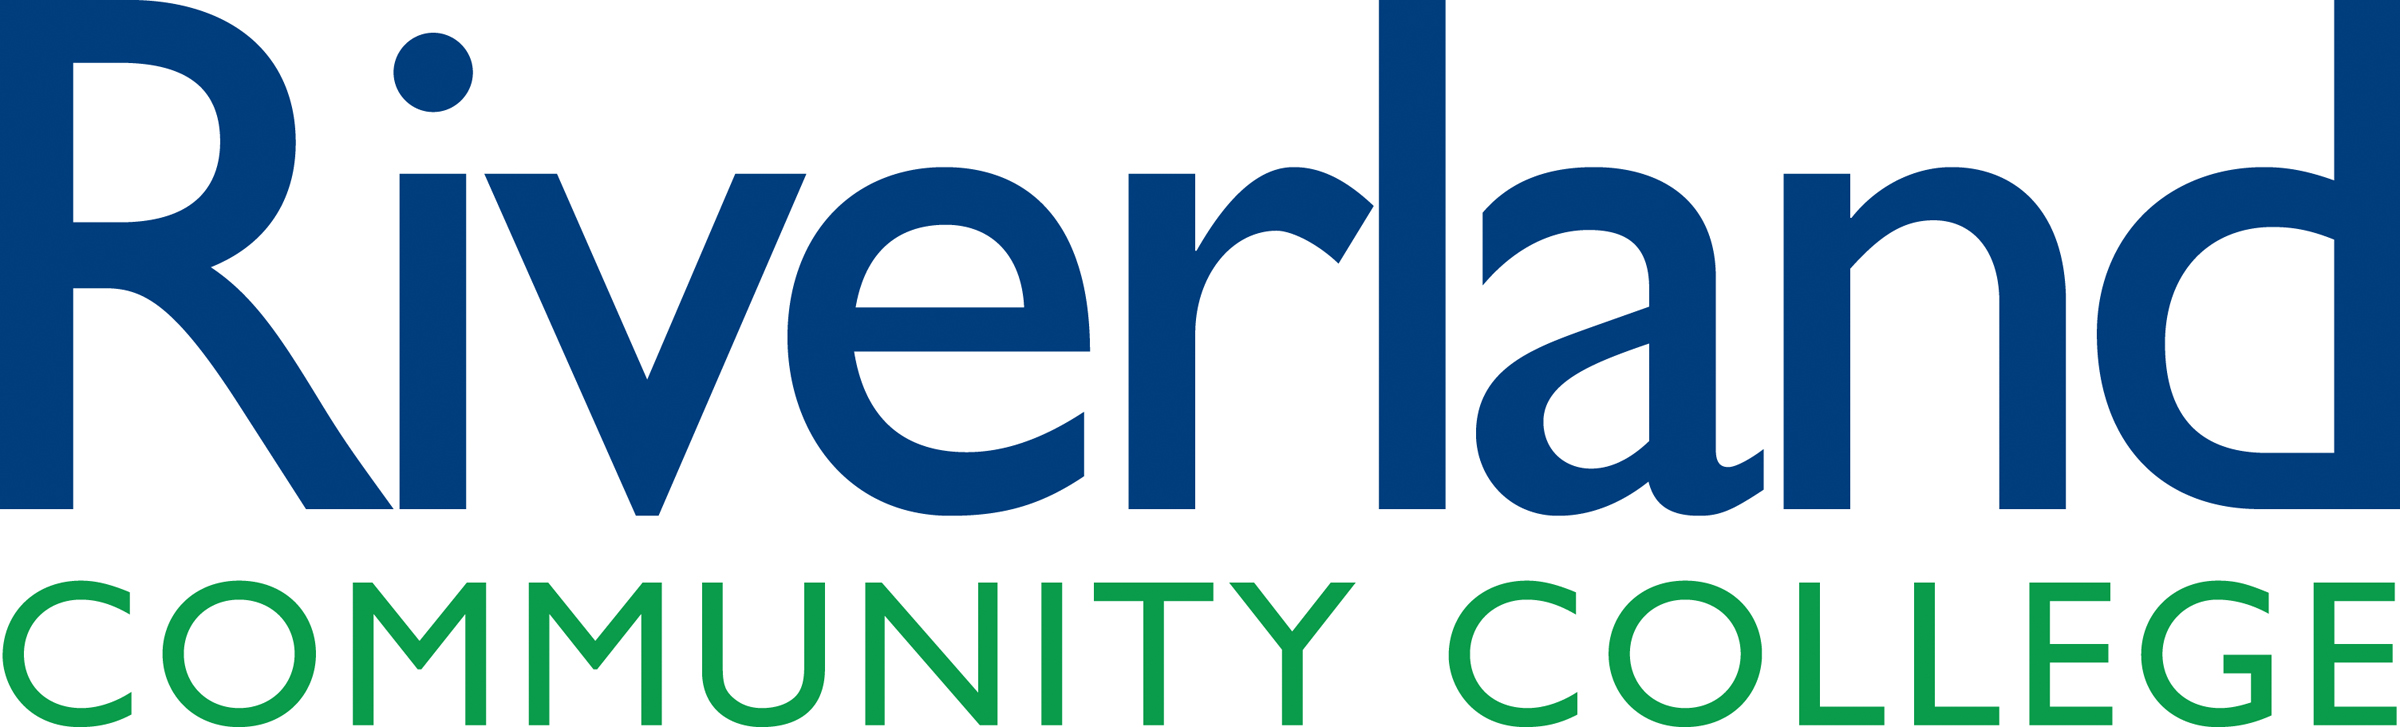 Riverland-Community-College-logo.jpg